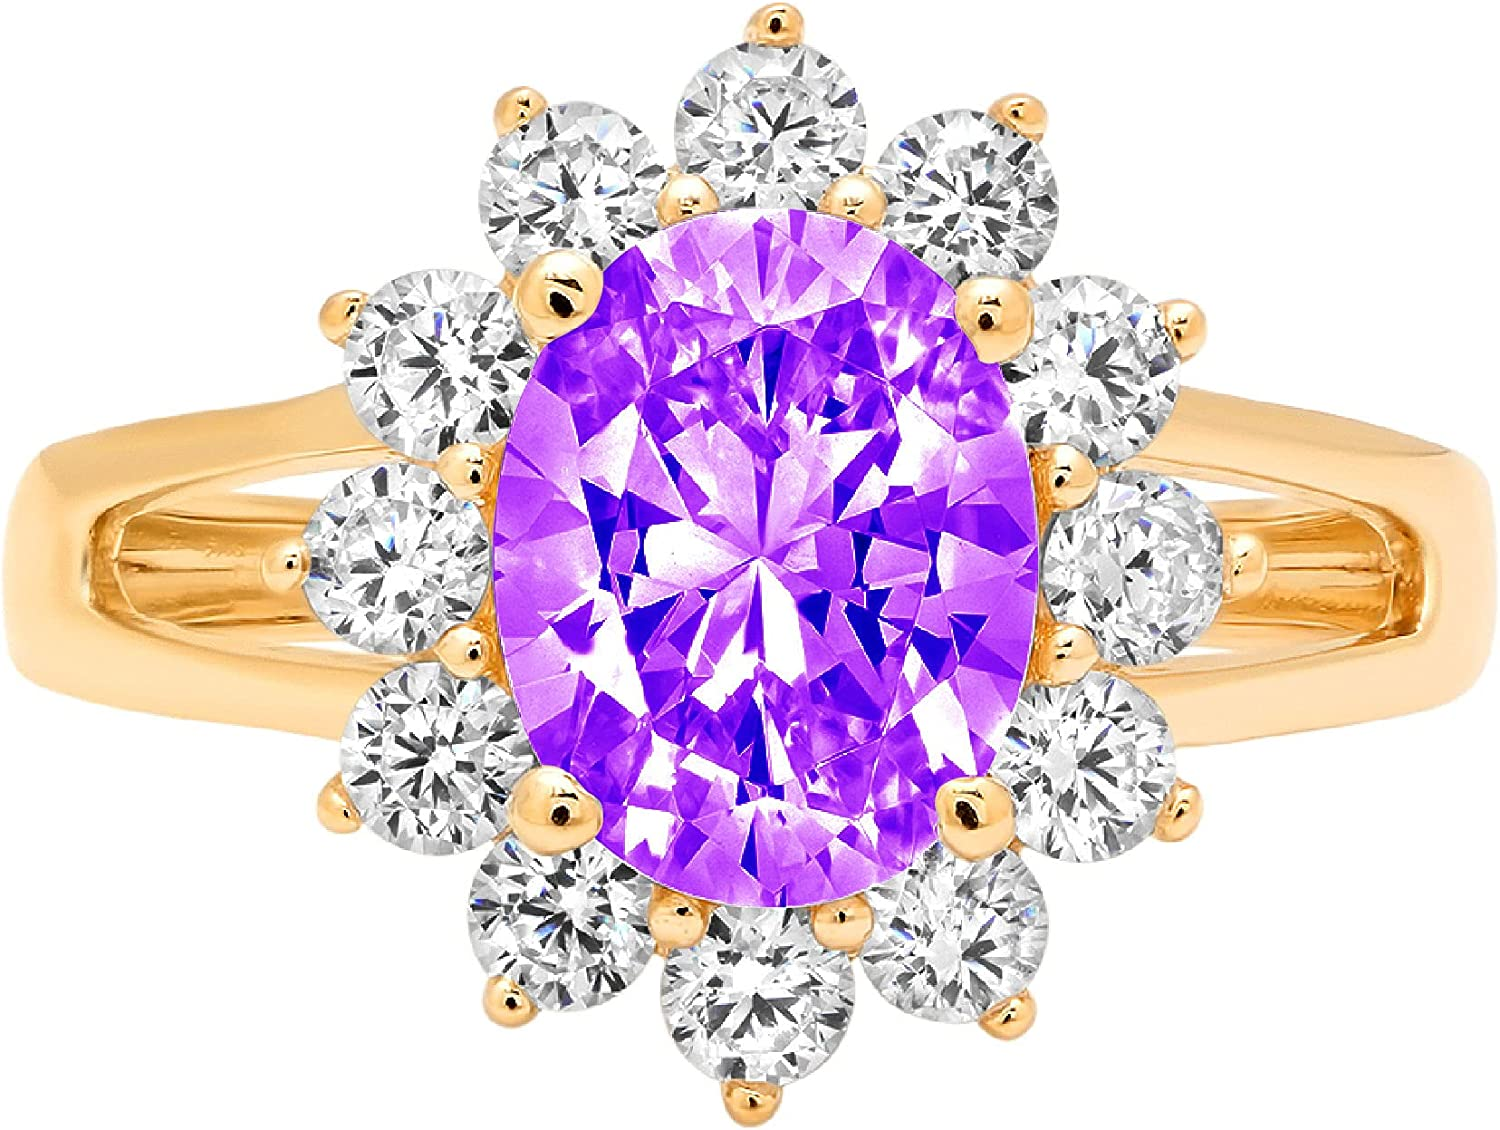 Clara Pucci 2.46 Brilliant Oval Cut Solitaire Accent Halo Stunning Genuine Flawless Natural Purple Amethyst Gem Designer Modern Ring Solid 18K Yellow Gold